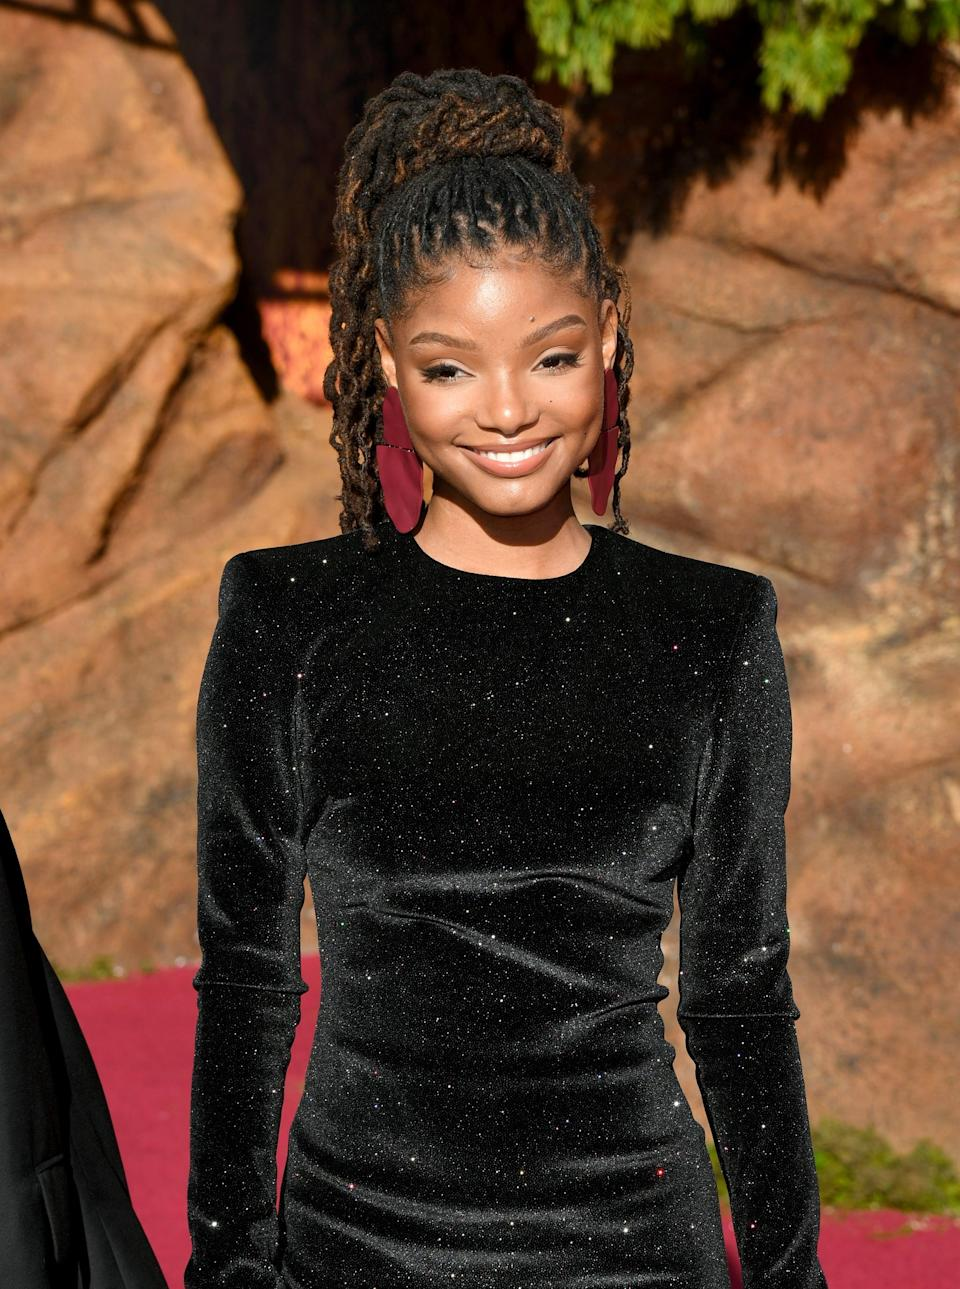 "<p>The 19-year-old singer and actress, who is one half of the pop-R&B duo Chloe x Halle, is <a href=""https://www.hollywoodreporter.com/heat-vision/disney-finds-little-mermaid-star-singer-halle-bailey-1220951"" class=""link rapid-noclick-resp"" rel=""nofollow noopener"" target=""_blank"" data-ylk=""slk:confirmed to star as Ariel"">confirmed to star as Ariel</a> in the live-action flick. It will be a massive breakout role for Bailey, who stars with her sister on Freeform's <strong>Grown-ish</strong>. </p>"